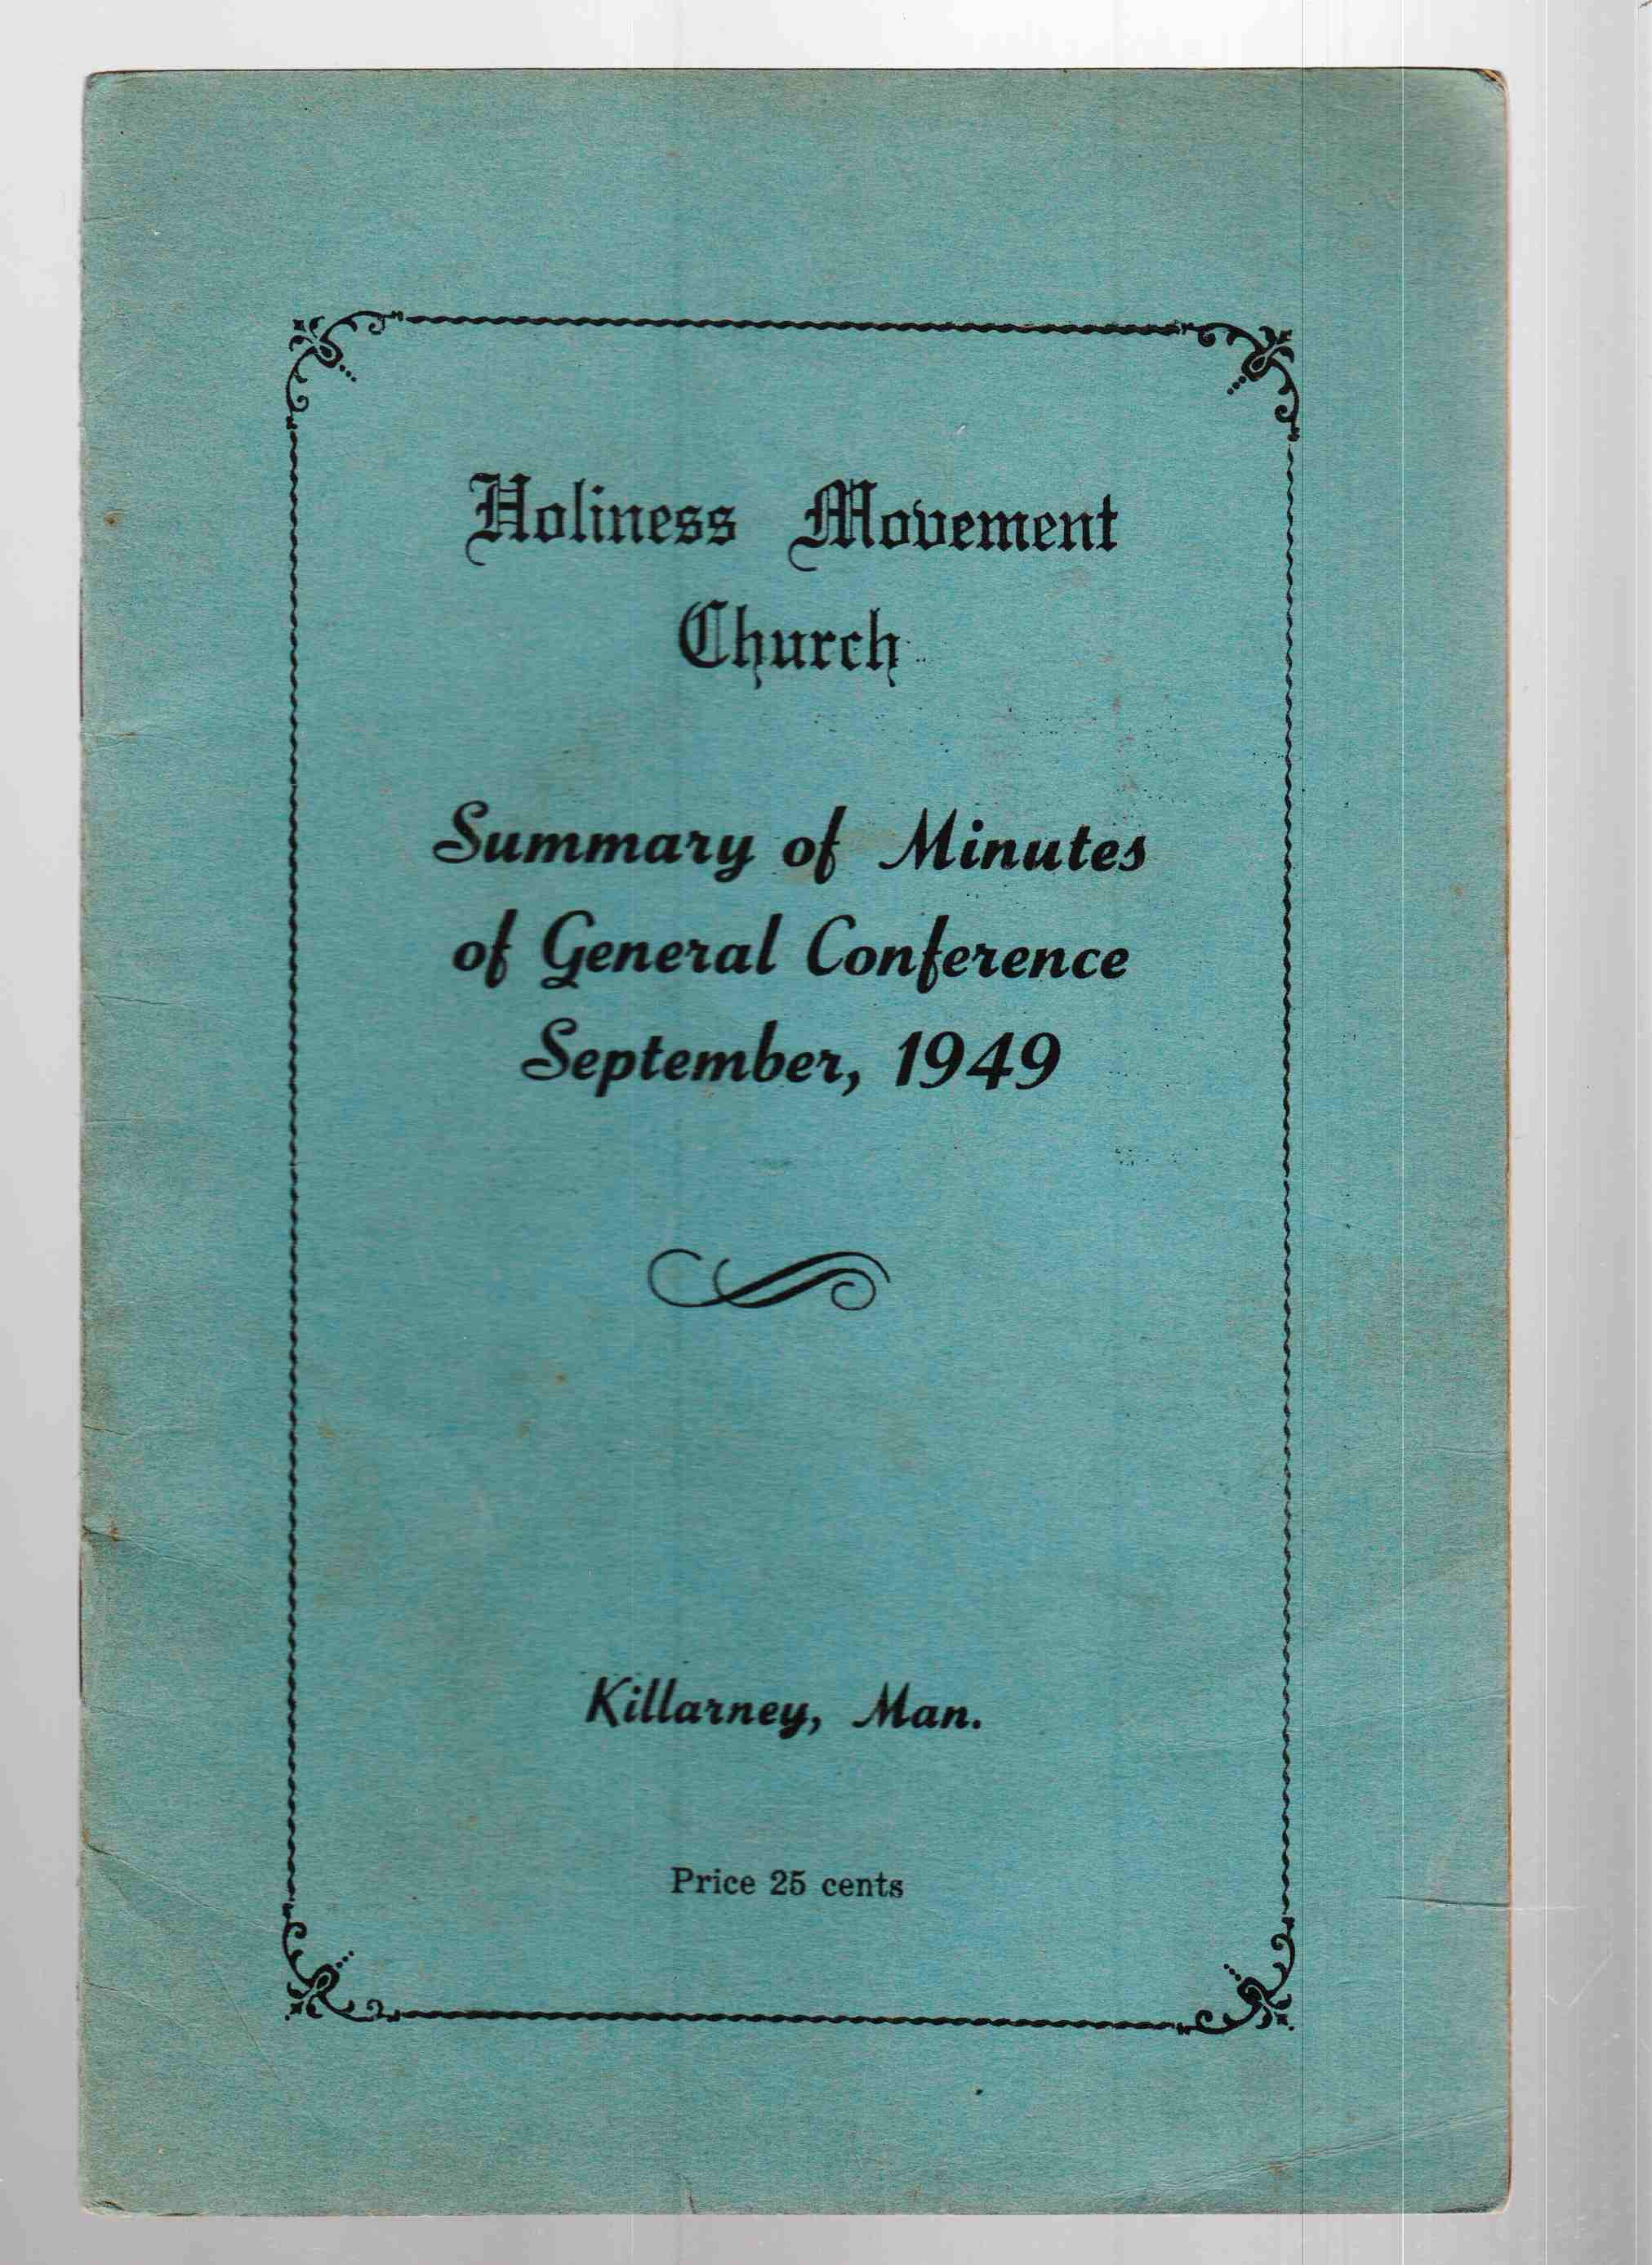 Image for Holiness Movement Church Summary of Minutes of General Conference September, 1949 Killarney, Man.